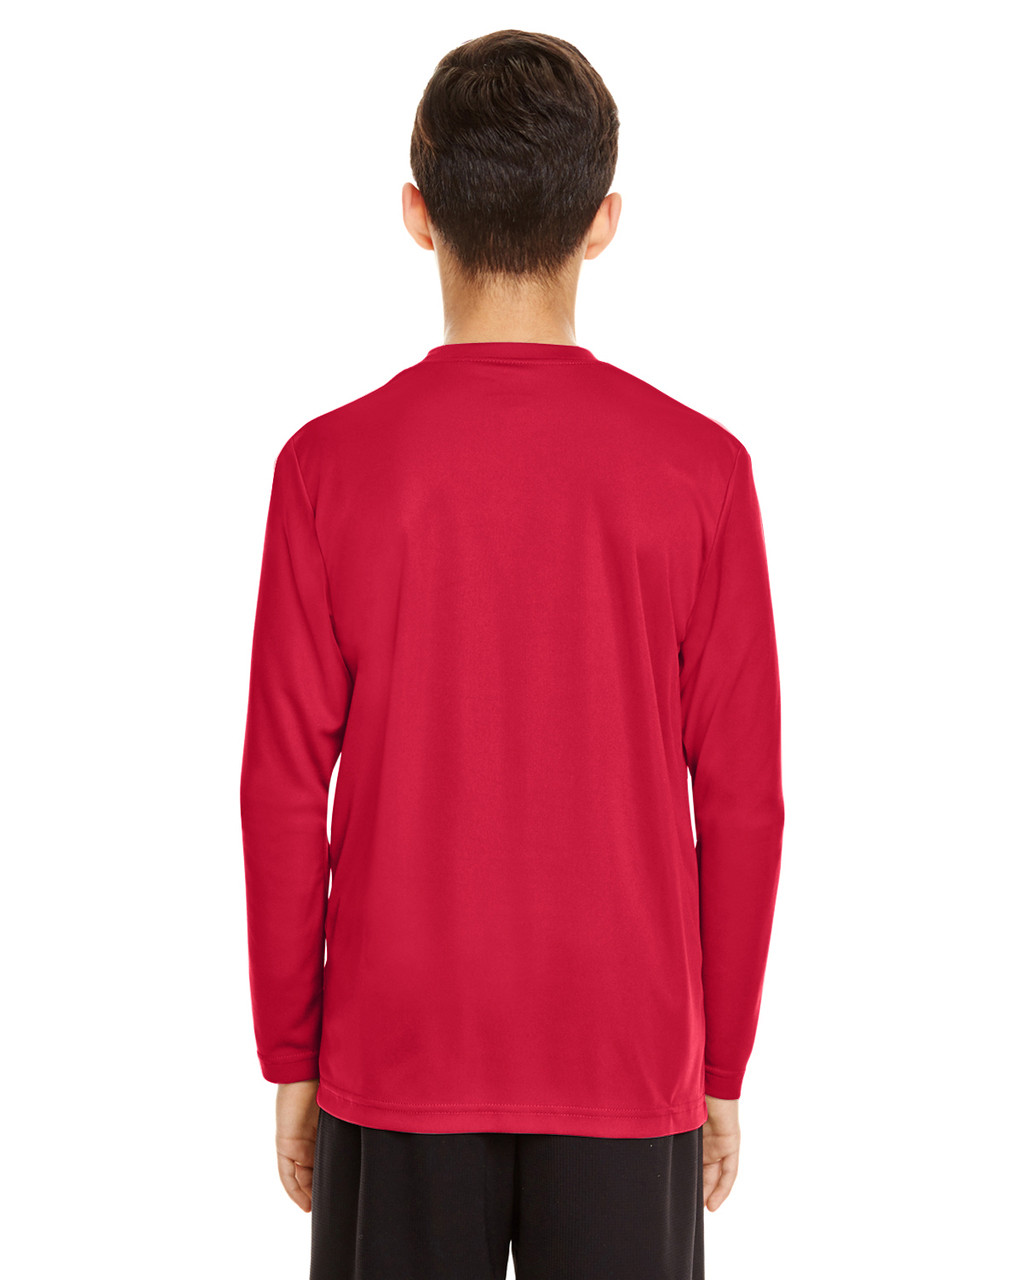 Sport Red - Back, TT11YL Team365 Youth Zone Performance Long Sleeve T-shirt | BlankClothing.ca